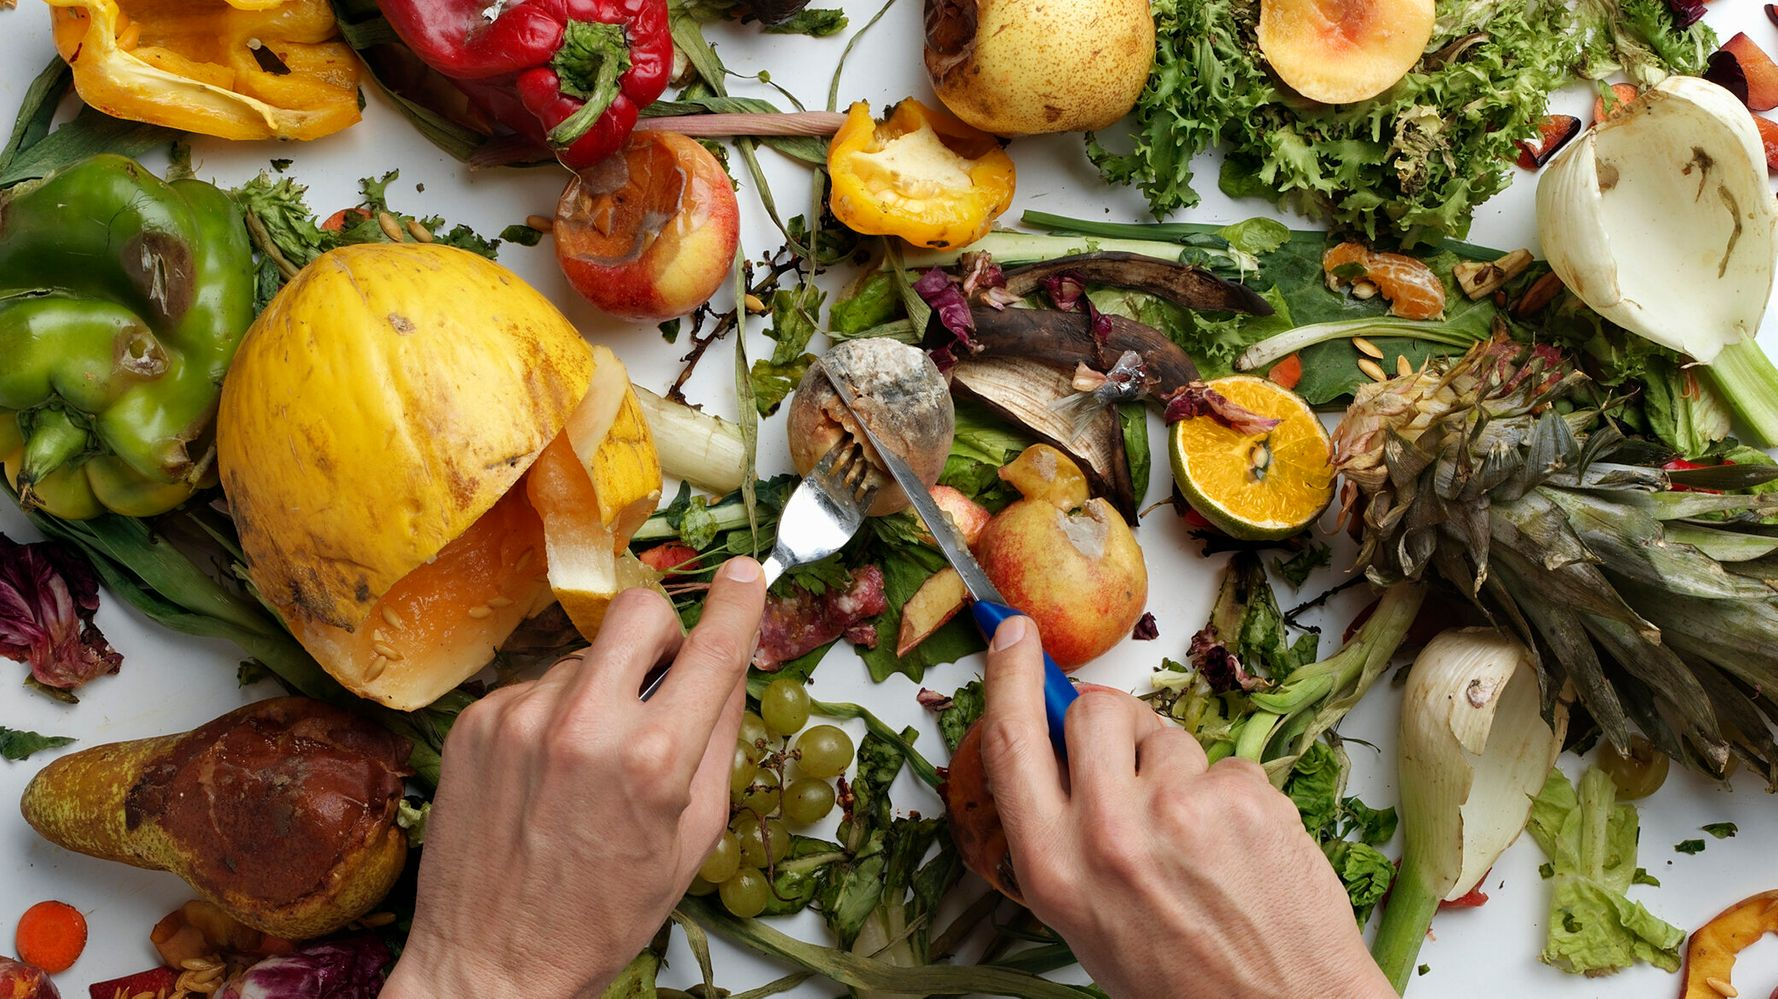 OzHarvest, United Nations urge Aussies to change food waste habits and #PledgeAPlate to save $8 billion per year